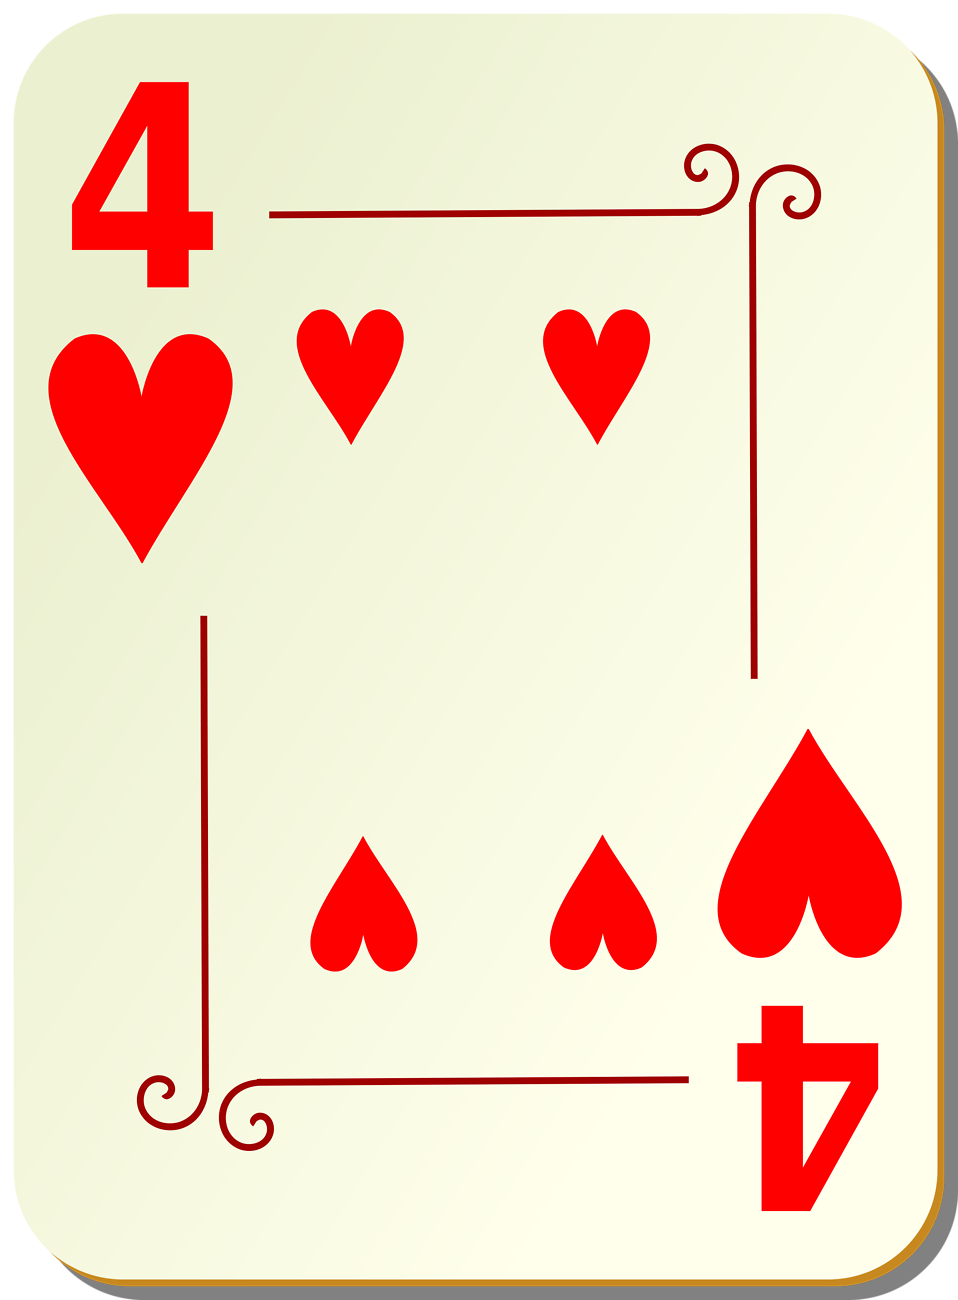 playing cards free stock photo illustration of a four of hearts rh freestockphotos biz deck of cards clipart free deck of cards clipart free